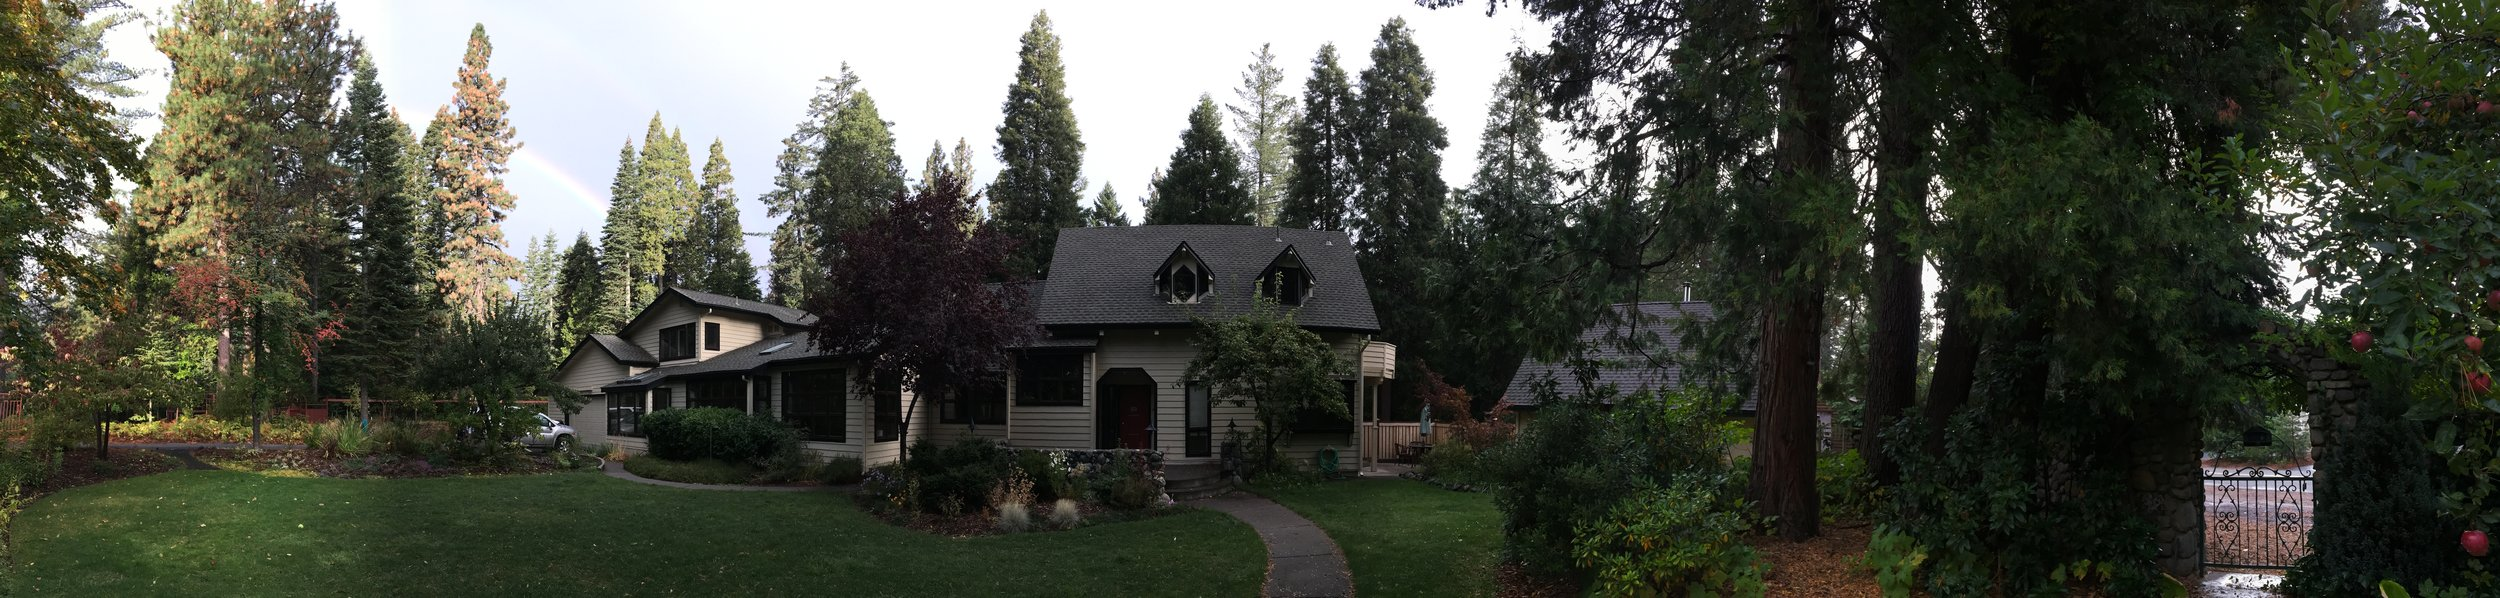 Welcomed view of main house and front cottage. Come enjoy the healing land of Mount Shasta, CA